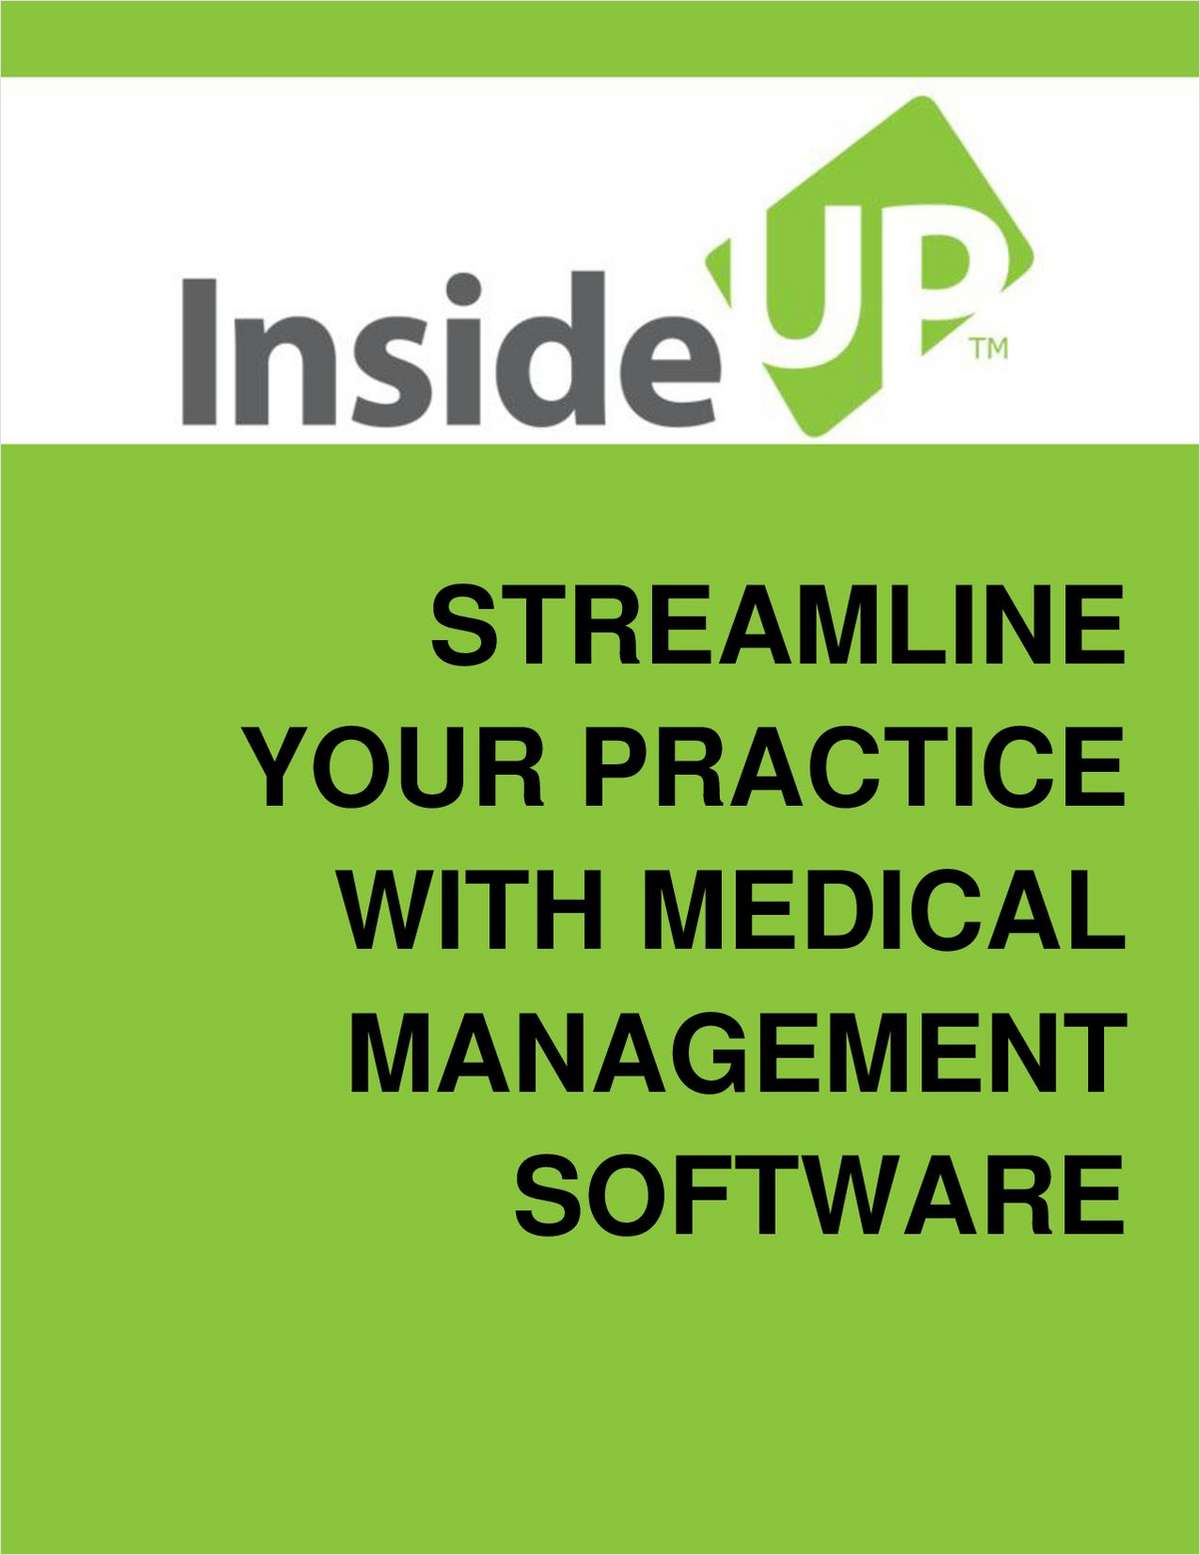 How to Streamline Your Practice with Medical Management Software